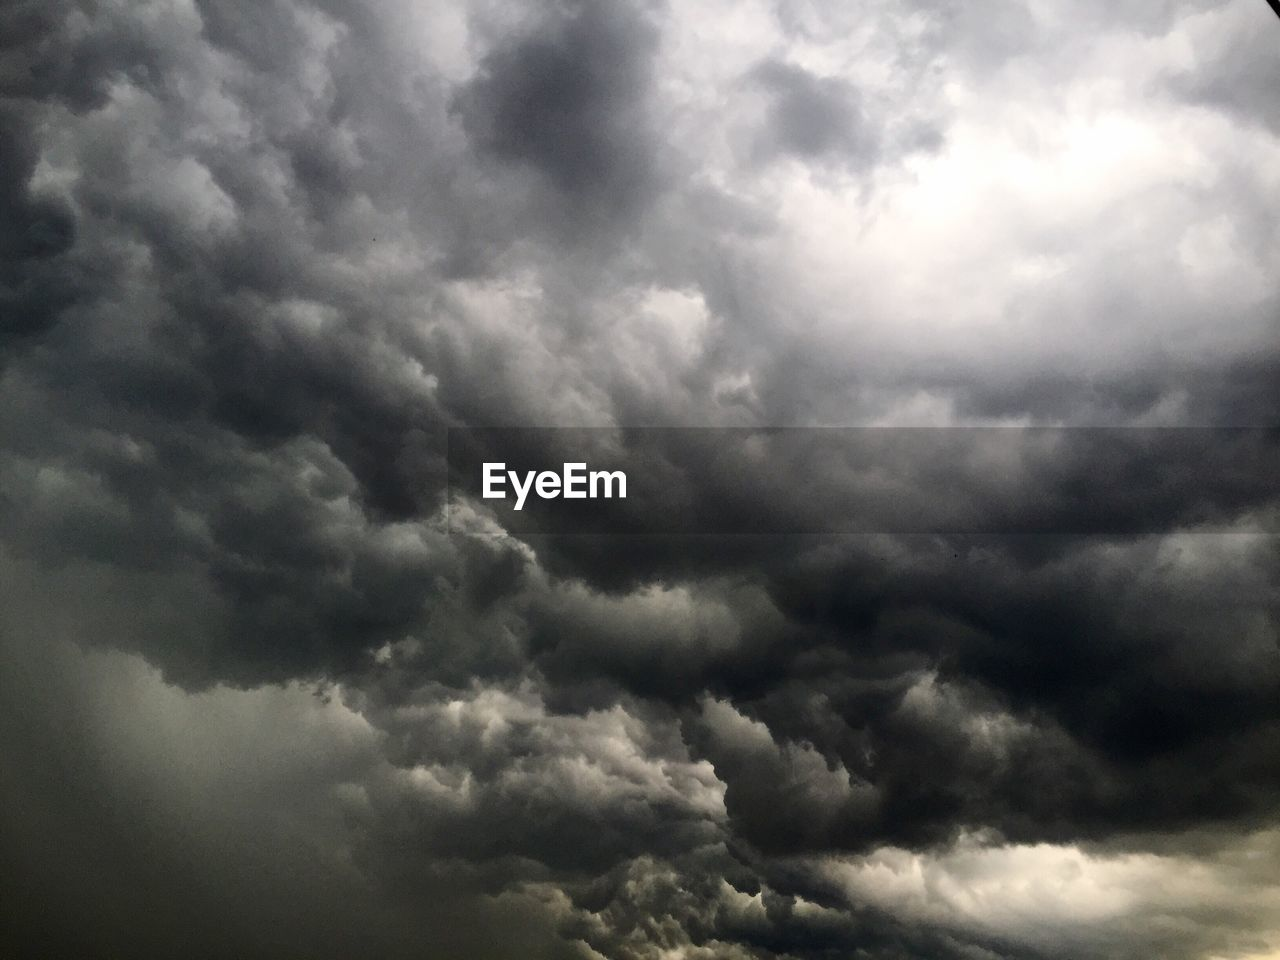 weather, cloud - sky, storm cloud, storm, beauty in nature, nature, atmospheric mood, dramatic sky, sky, cloudscape, scenics, thunderstorm, sky only, majestic, backgrounds, low angle view, dark, no people, awe, tranquility, ominous, day, outdoors, tornado, cyclone